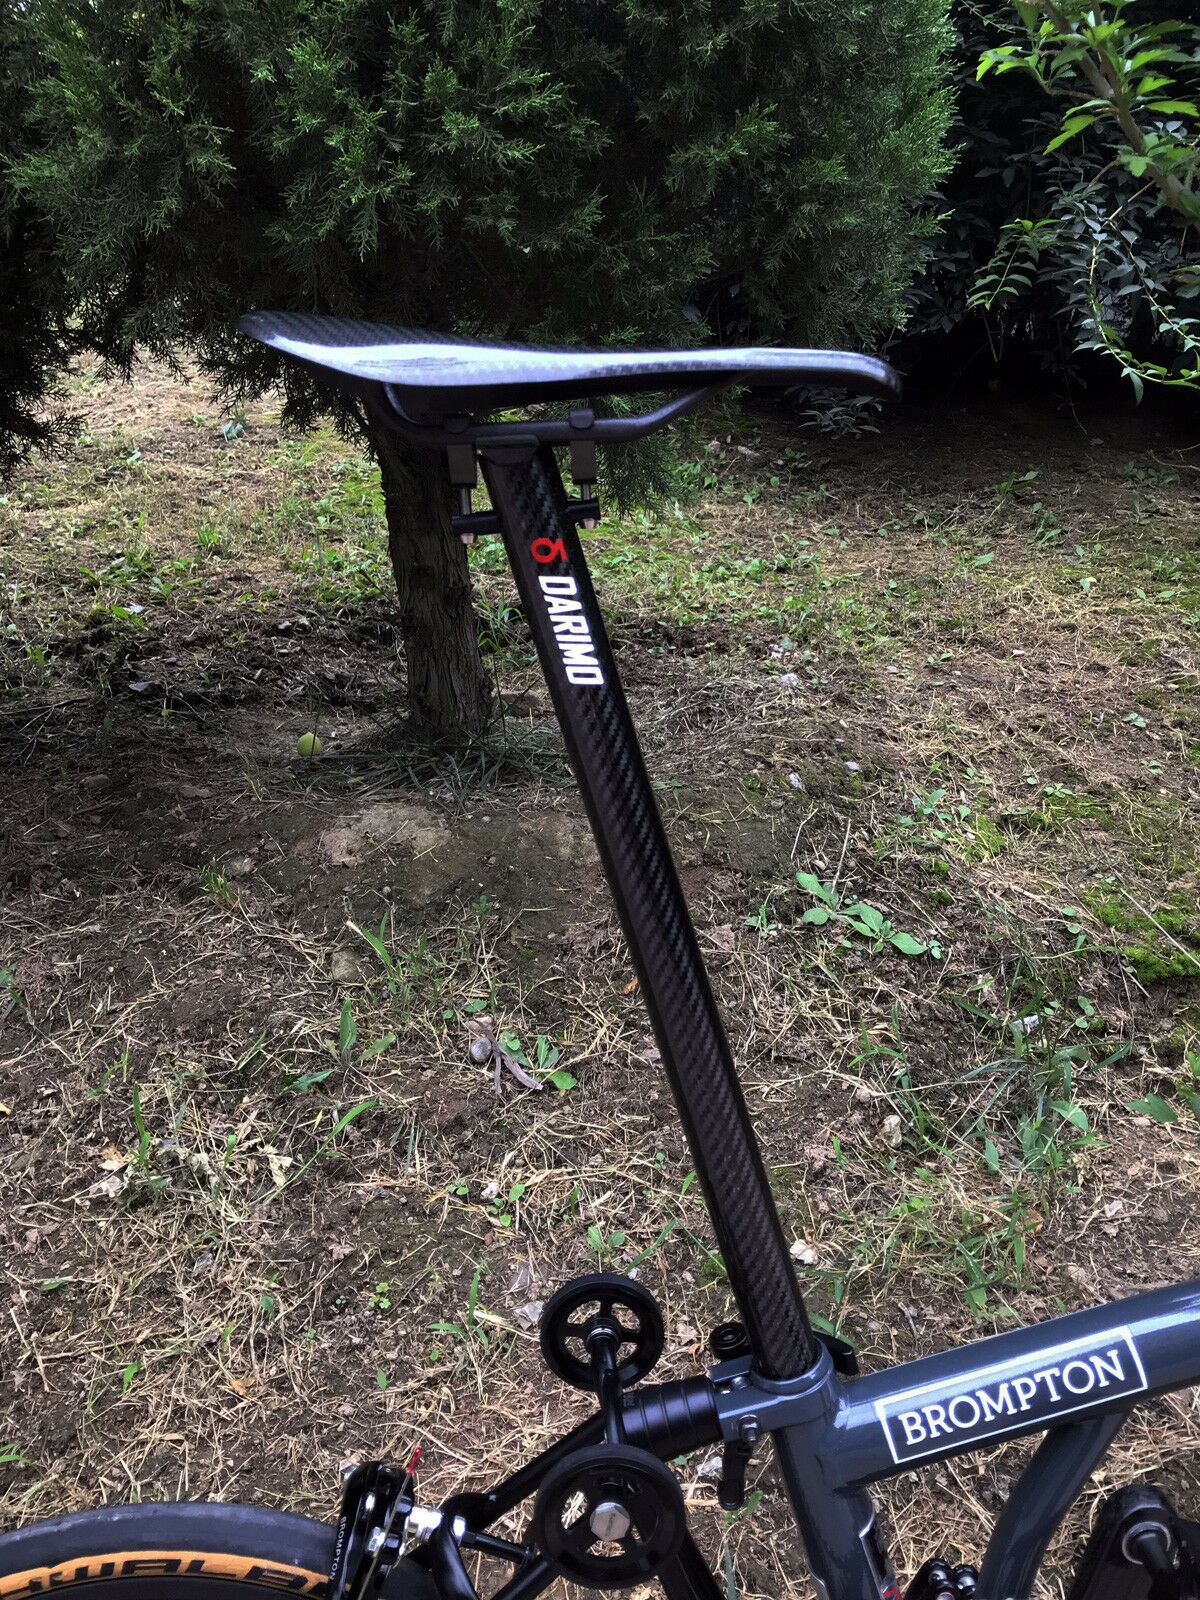 DARIMO seat post for BROMPTON 31.6600 only 128g (lighter than Schmolke)